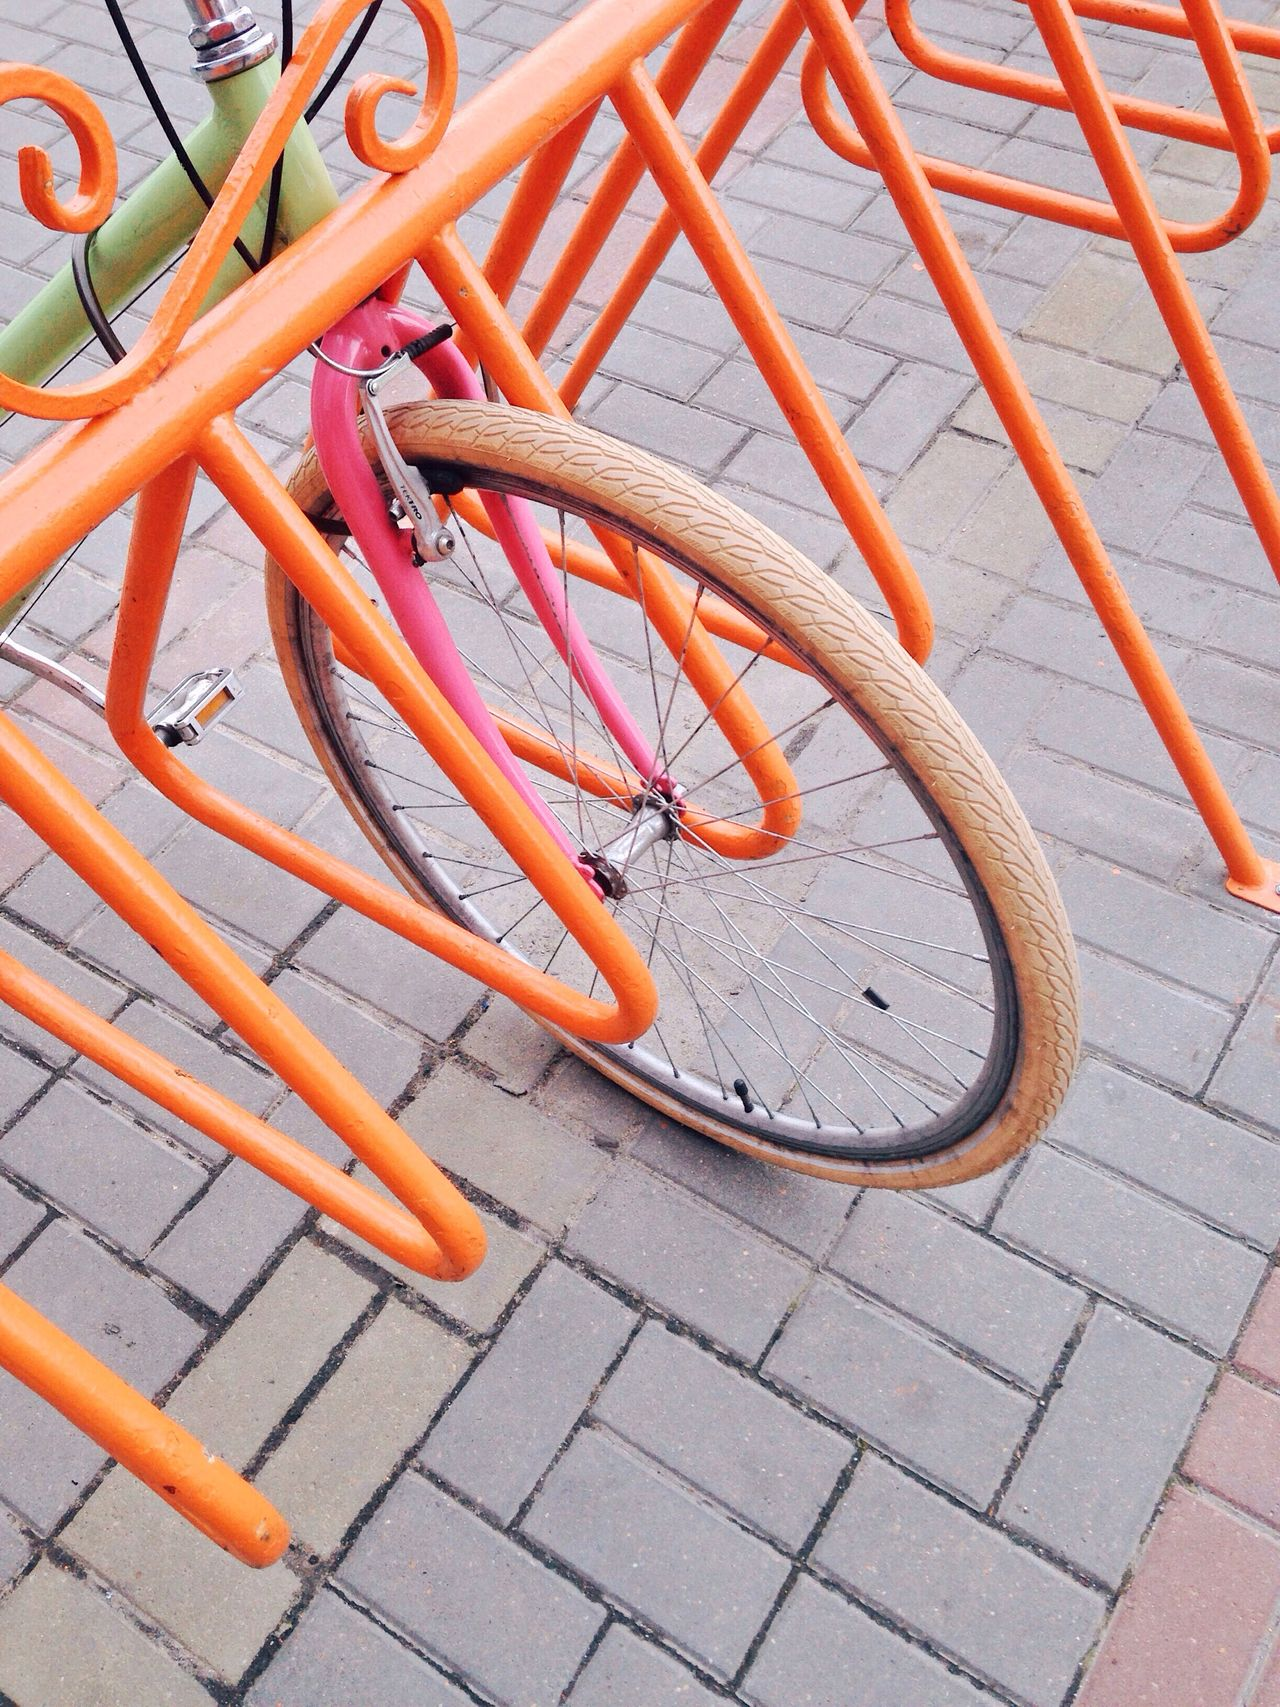 Colorful details Bicycle Wheel Orange Color Outdoors Transportation Mode Of Transport No People Bicycle Rack Travel